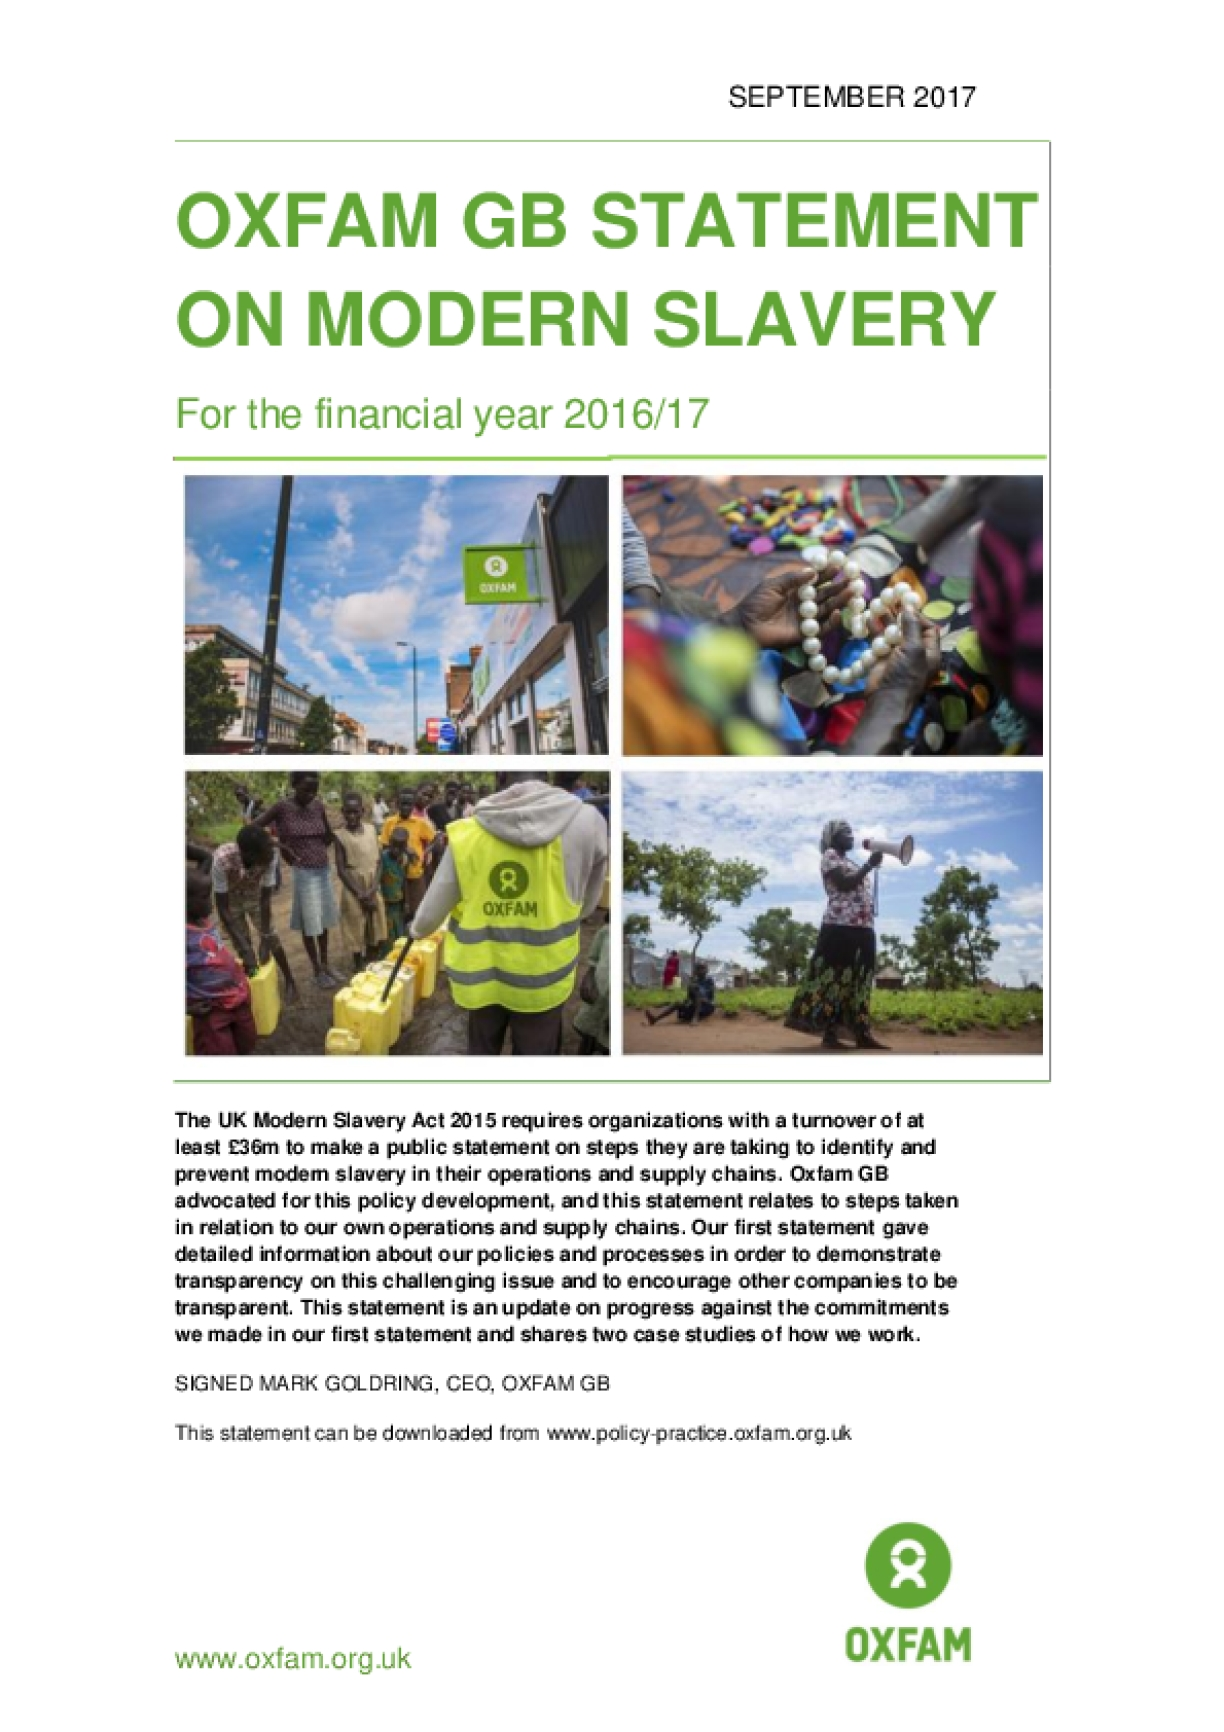 Oxfam GB Statement on Modern Slavery for the Financial Year 2016/17